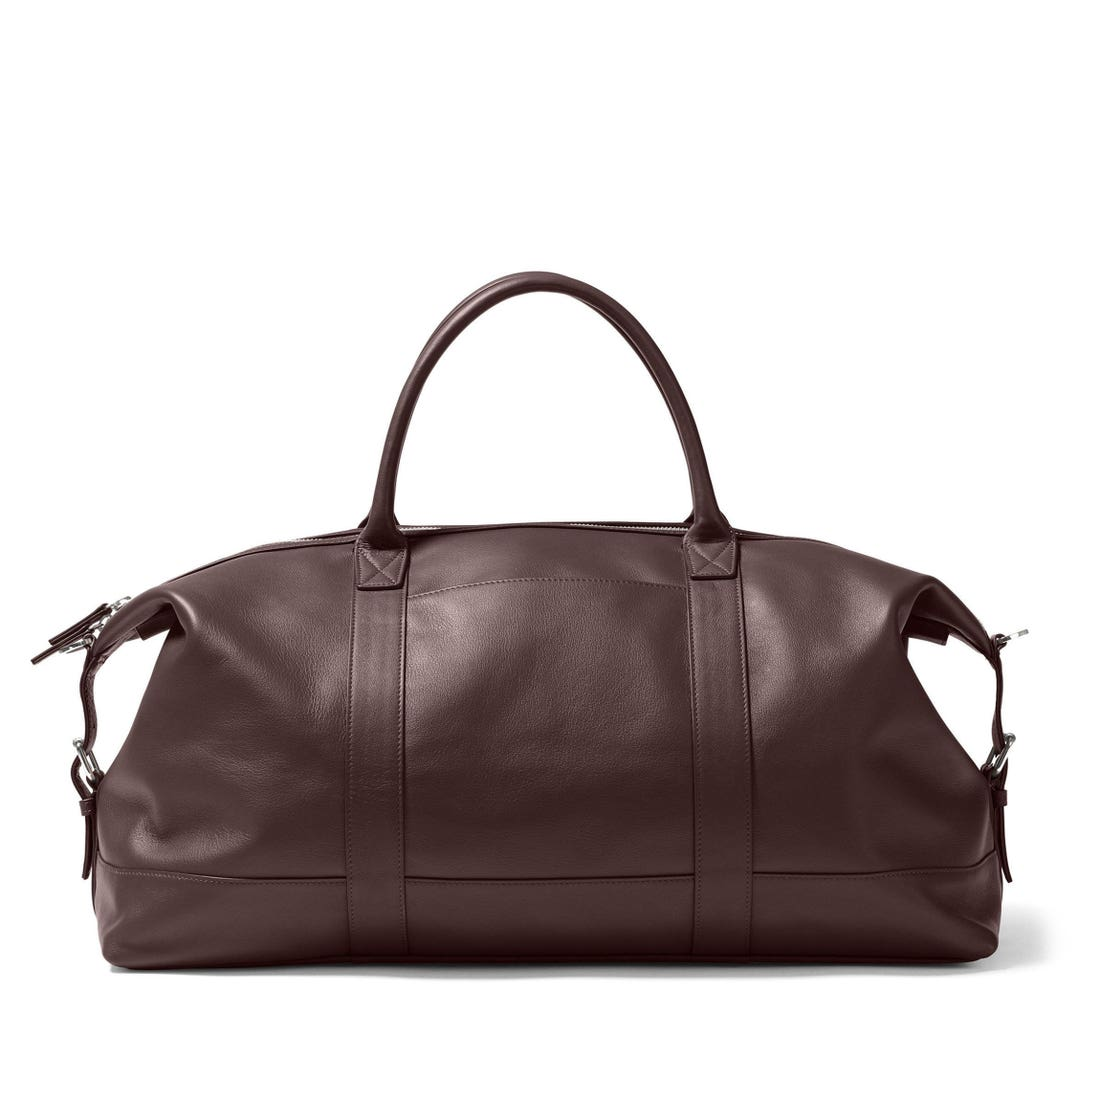 Kessler Medium Duffle